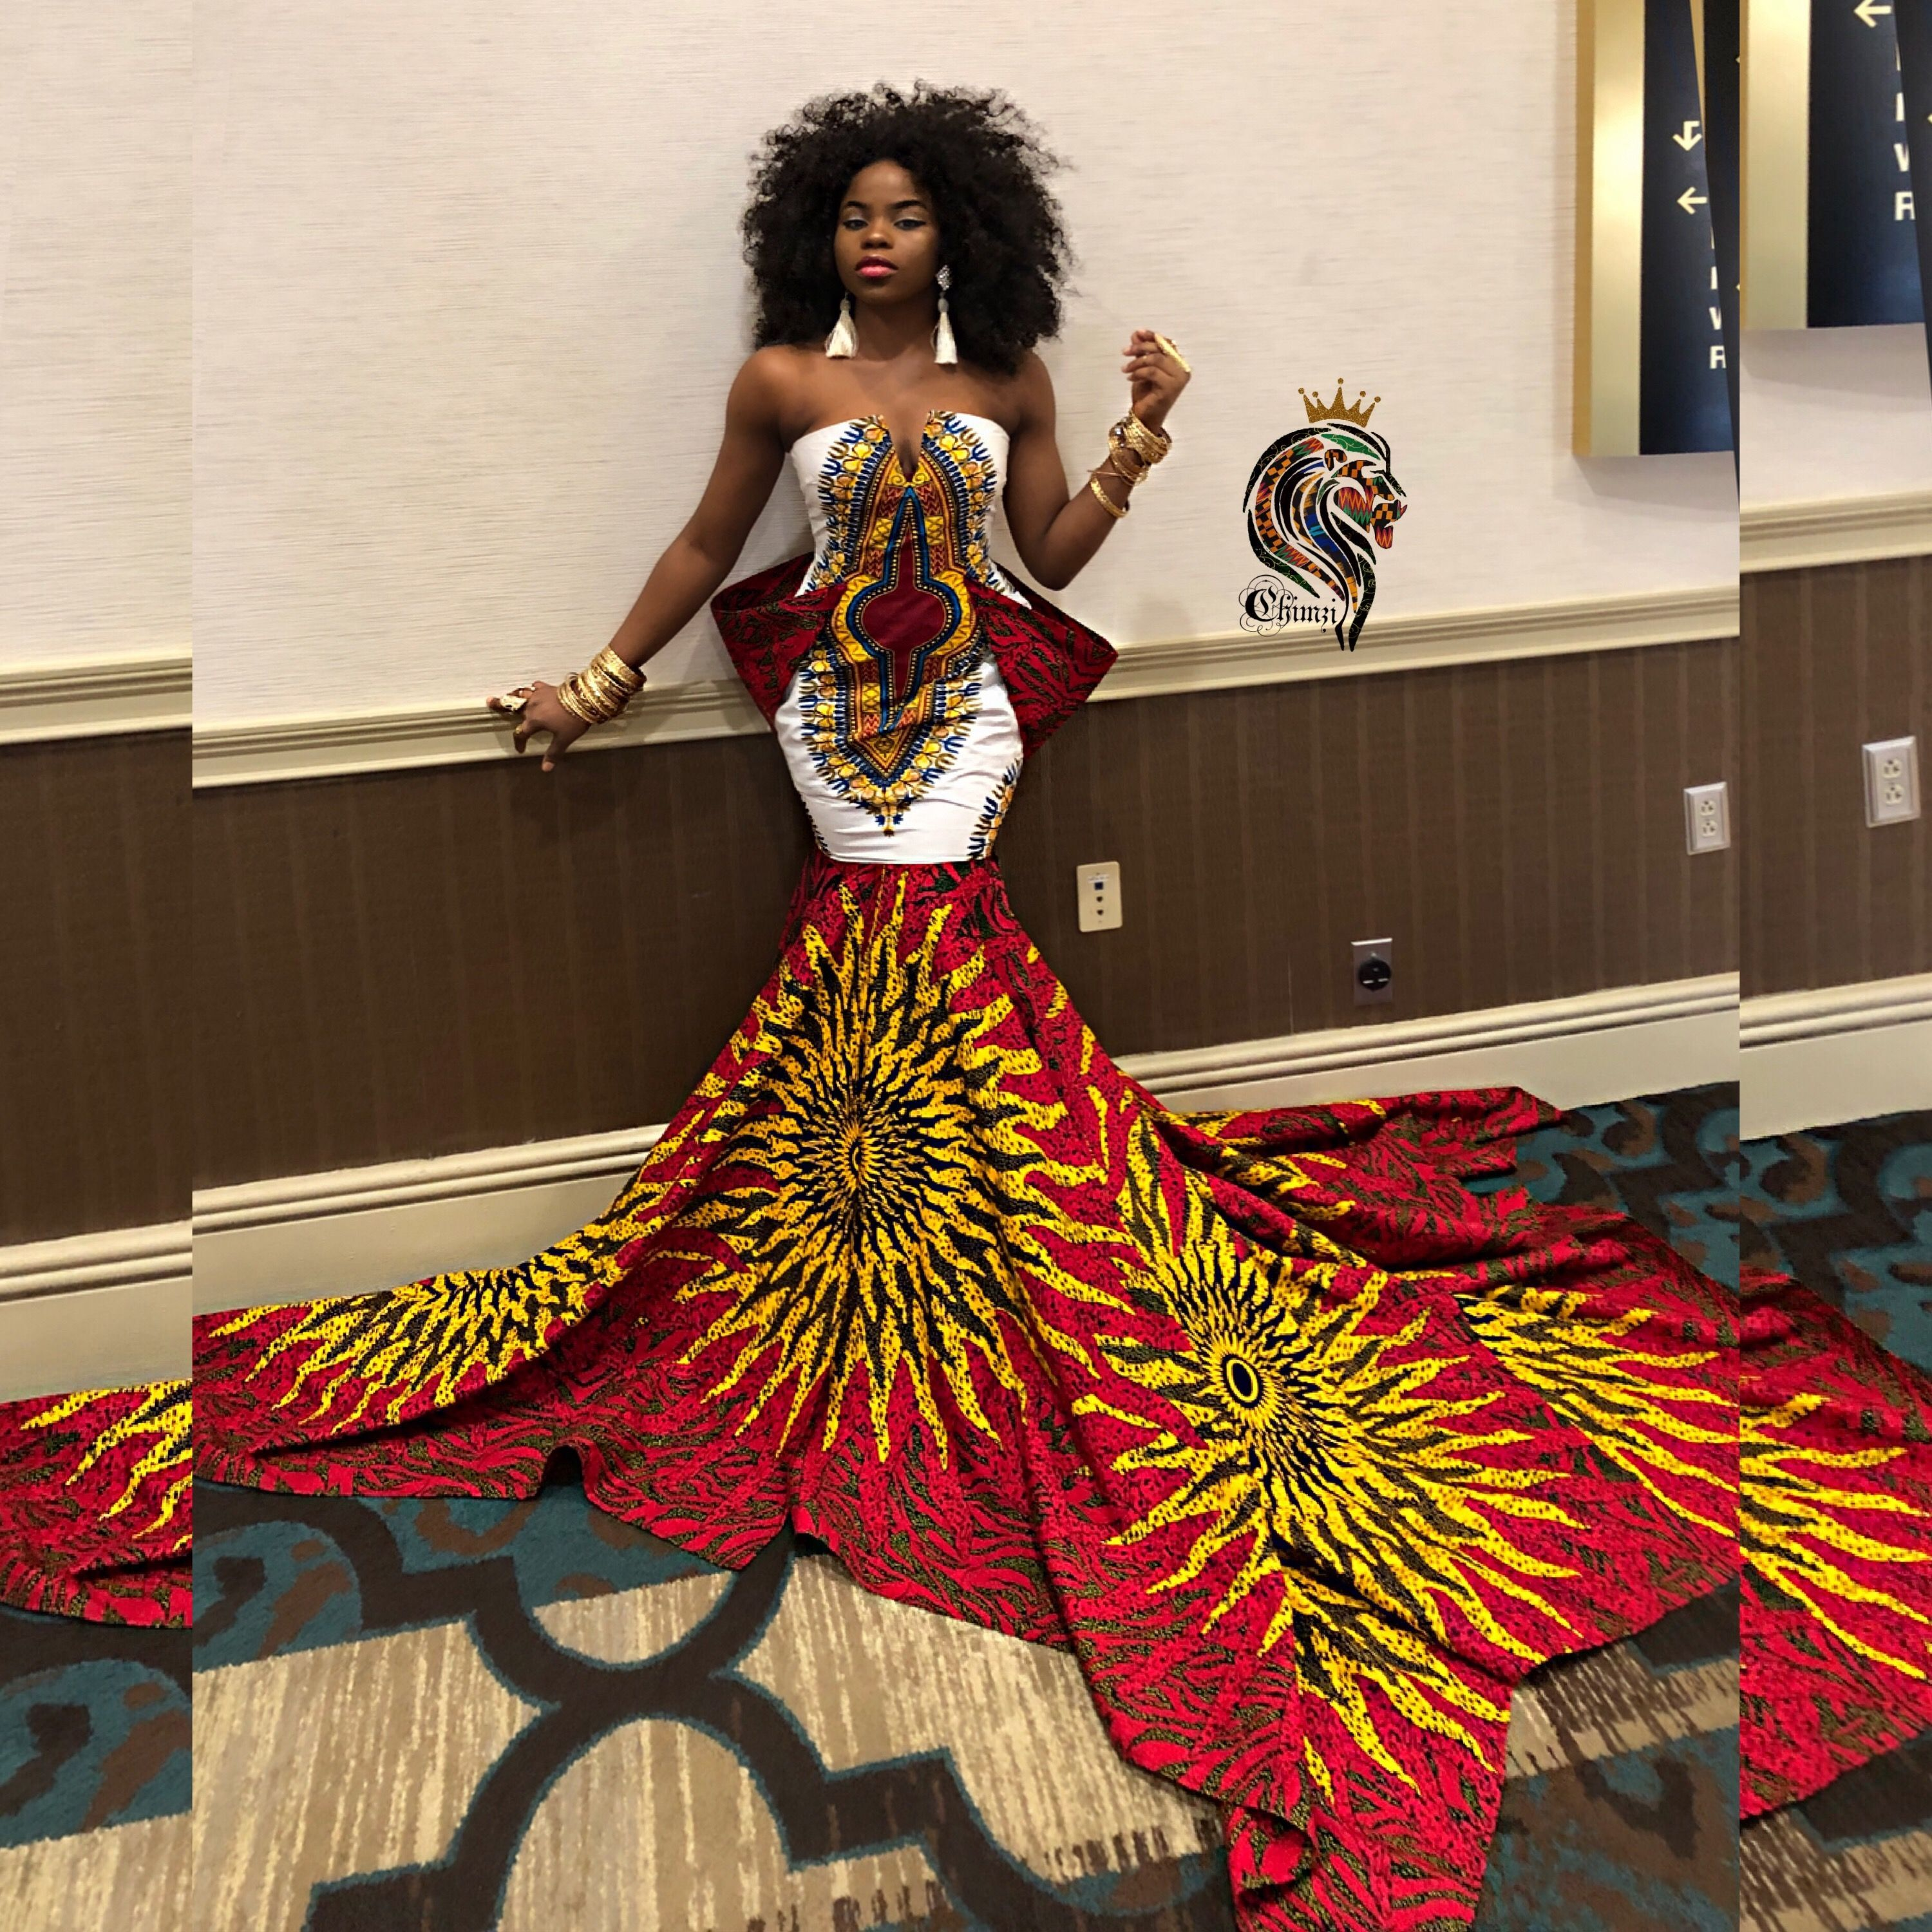 QUEEN AYO WOMEN'S MERMAID DRESS IN WHITE AND RED AFRICAN ANKARA DASHIKI KENTE PRINT FABRIC #ankaramode QUEEN AYO WOMEN'S MERMAID DRESS IN WHITE AND RED AFRICAN ANKARA DASHIKI KENTE PRINT FABRIC #ankaramode